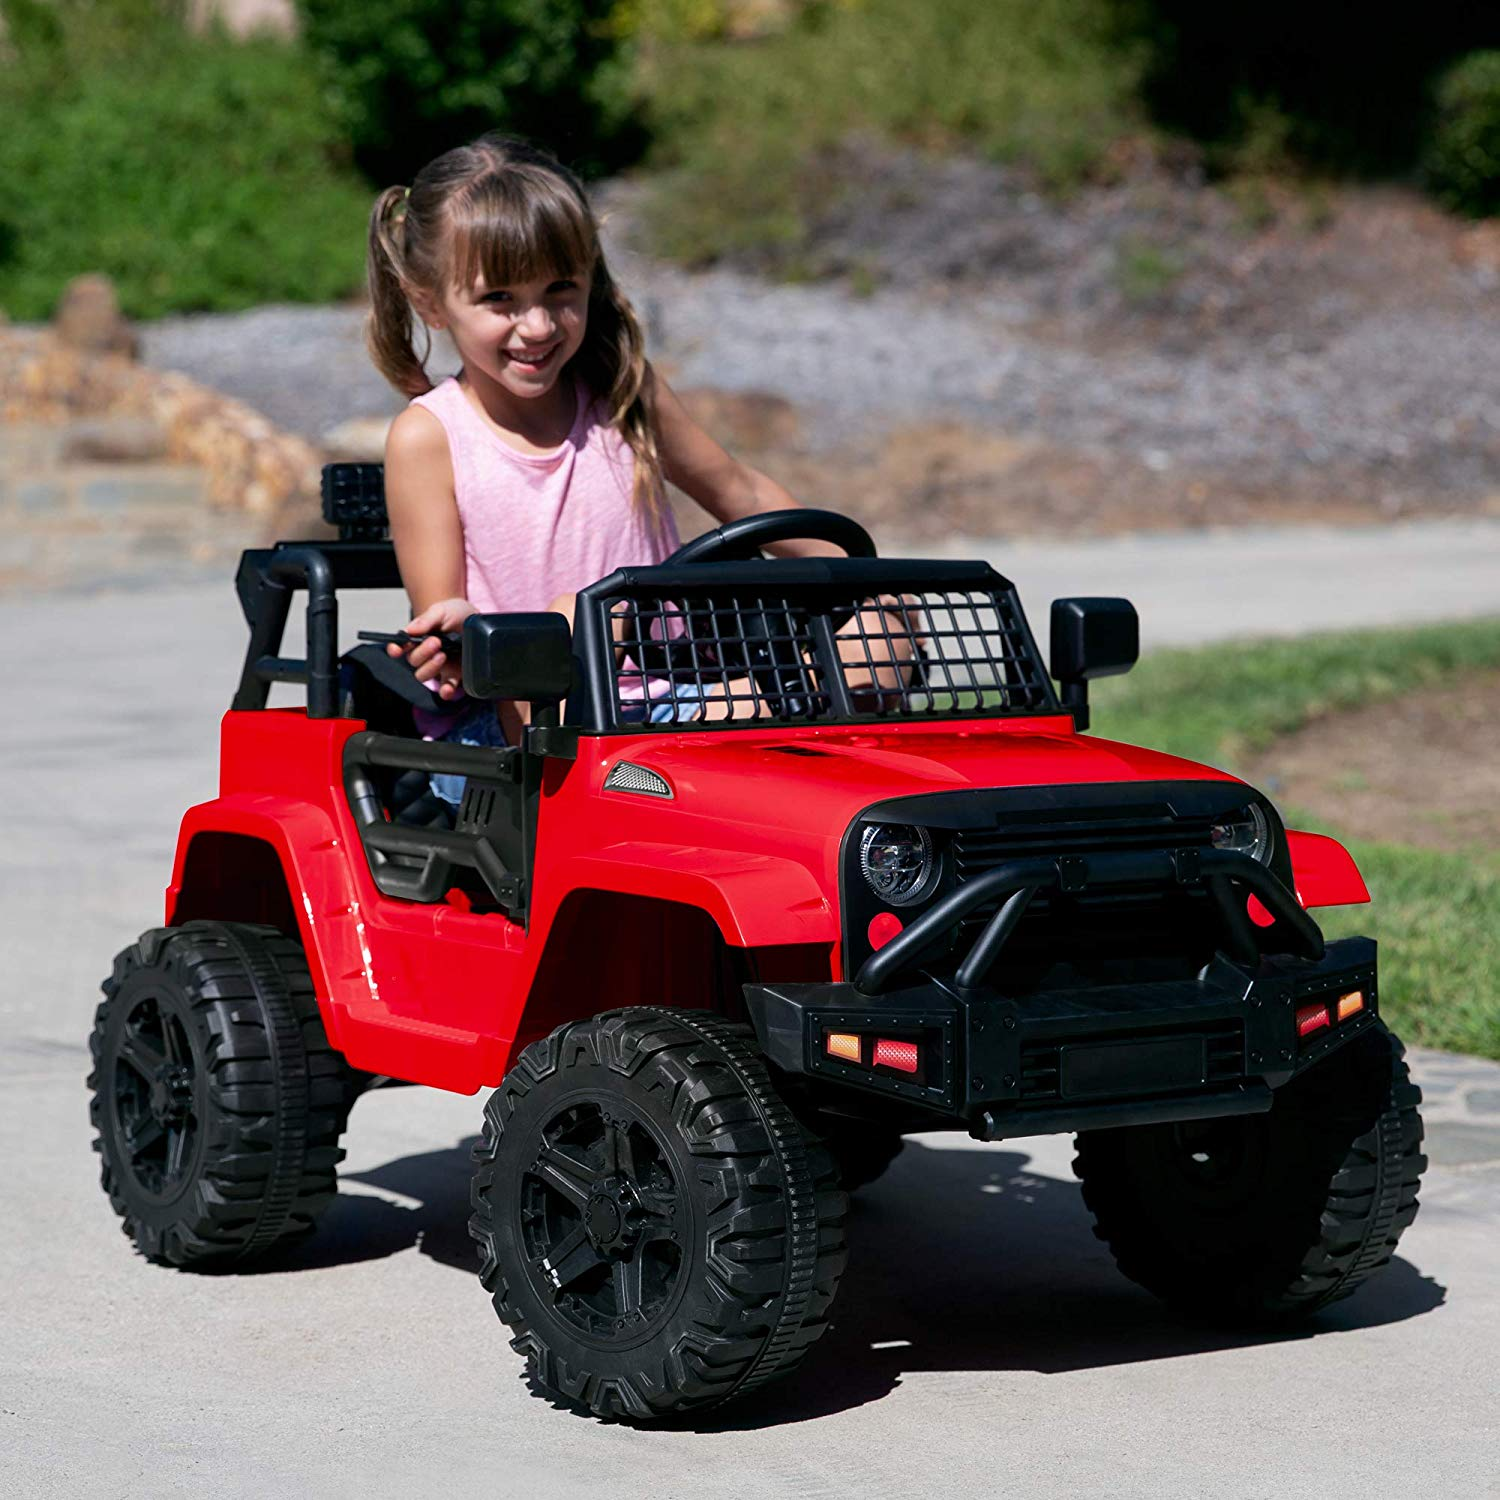 Benefits and Features of Parental Remote Control Ride on Cars